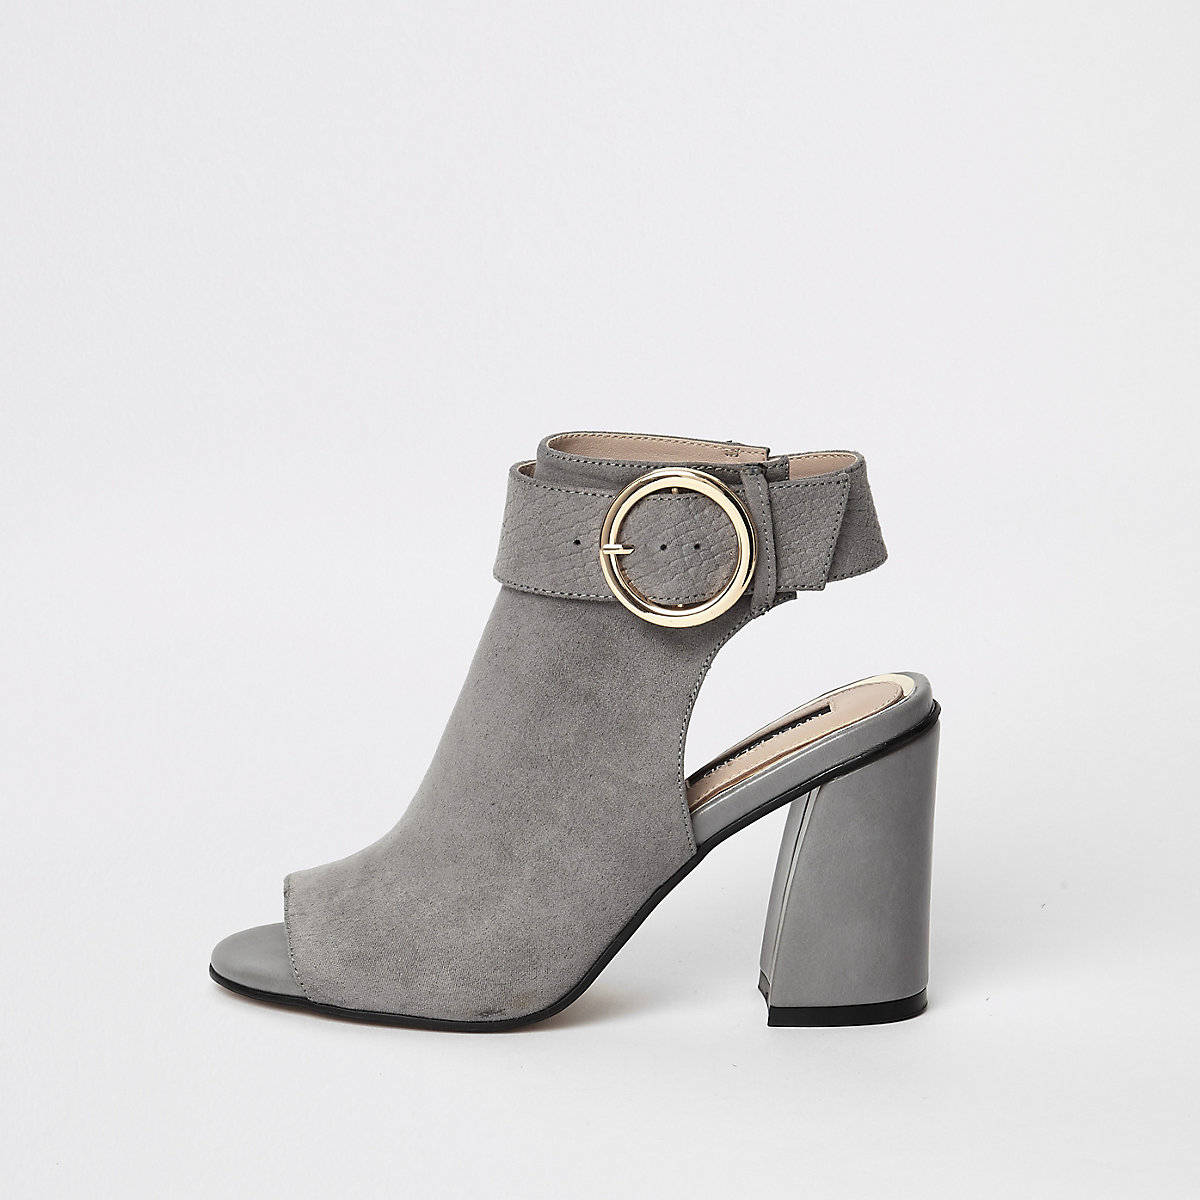 Grey buckle strap ankle shoe boots